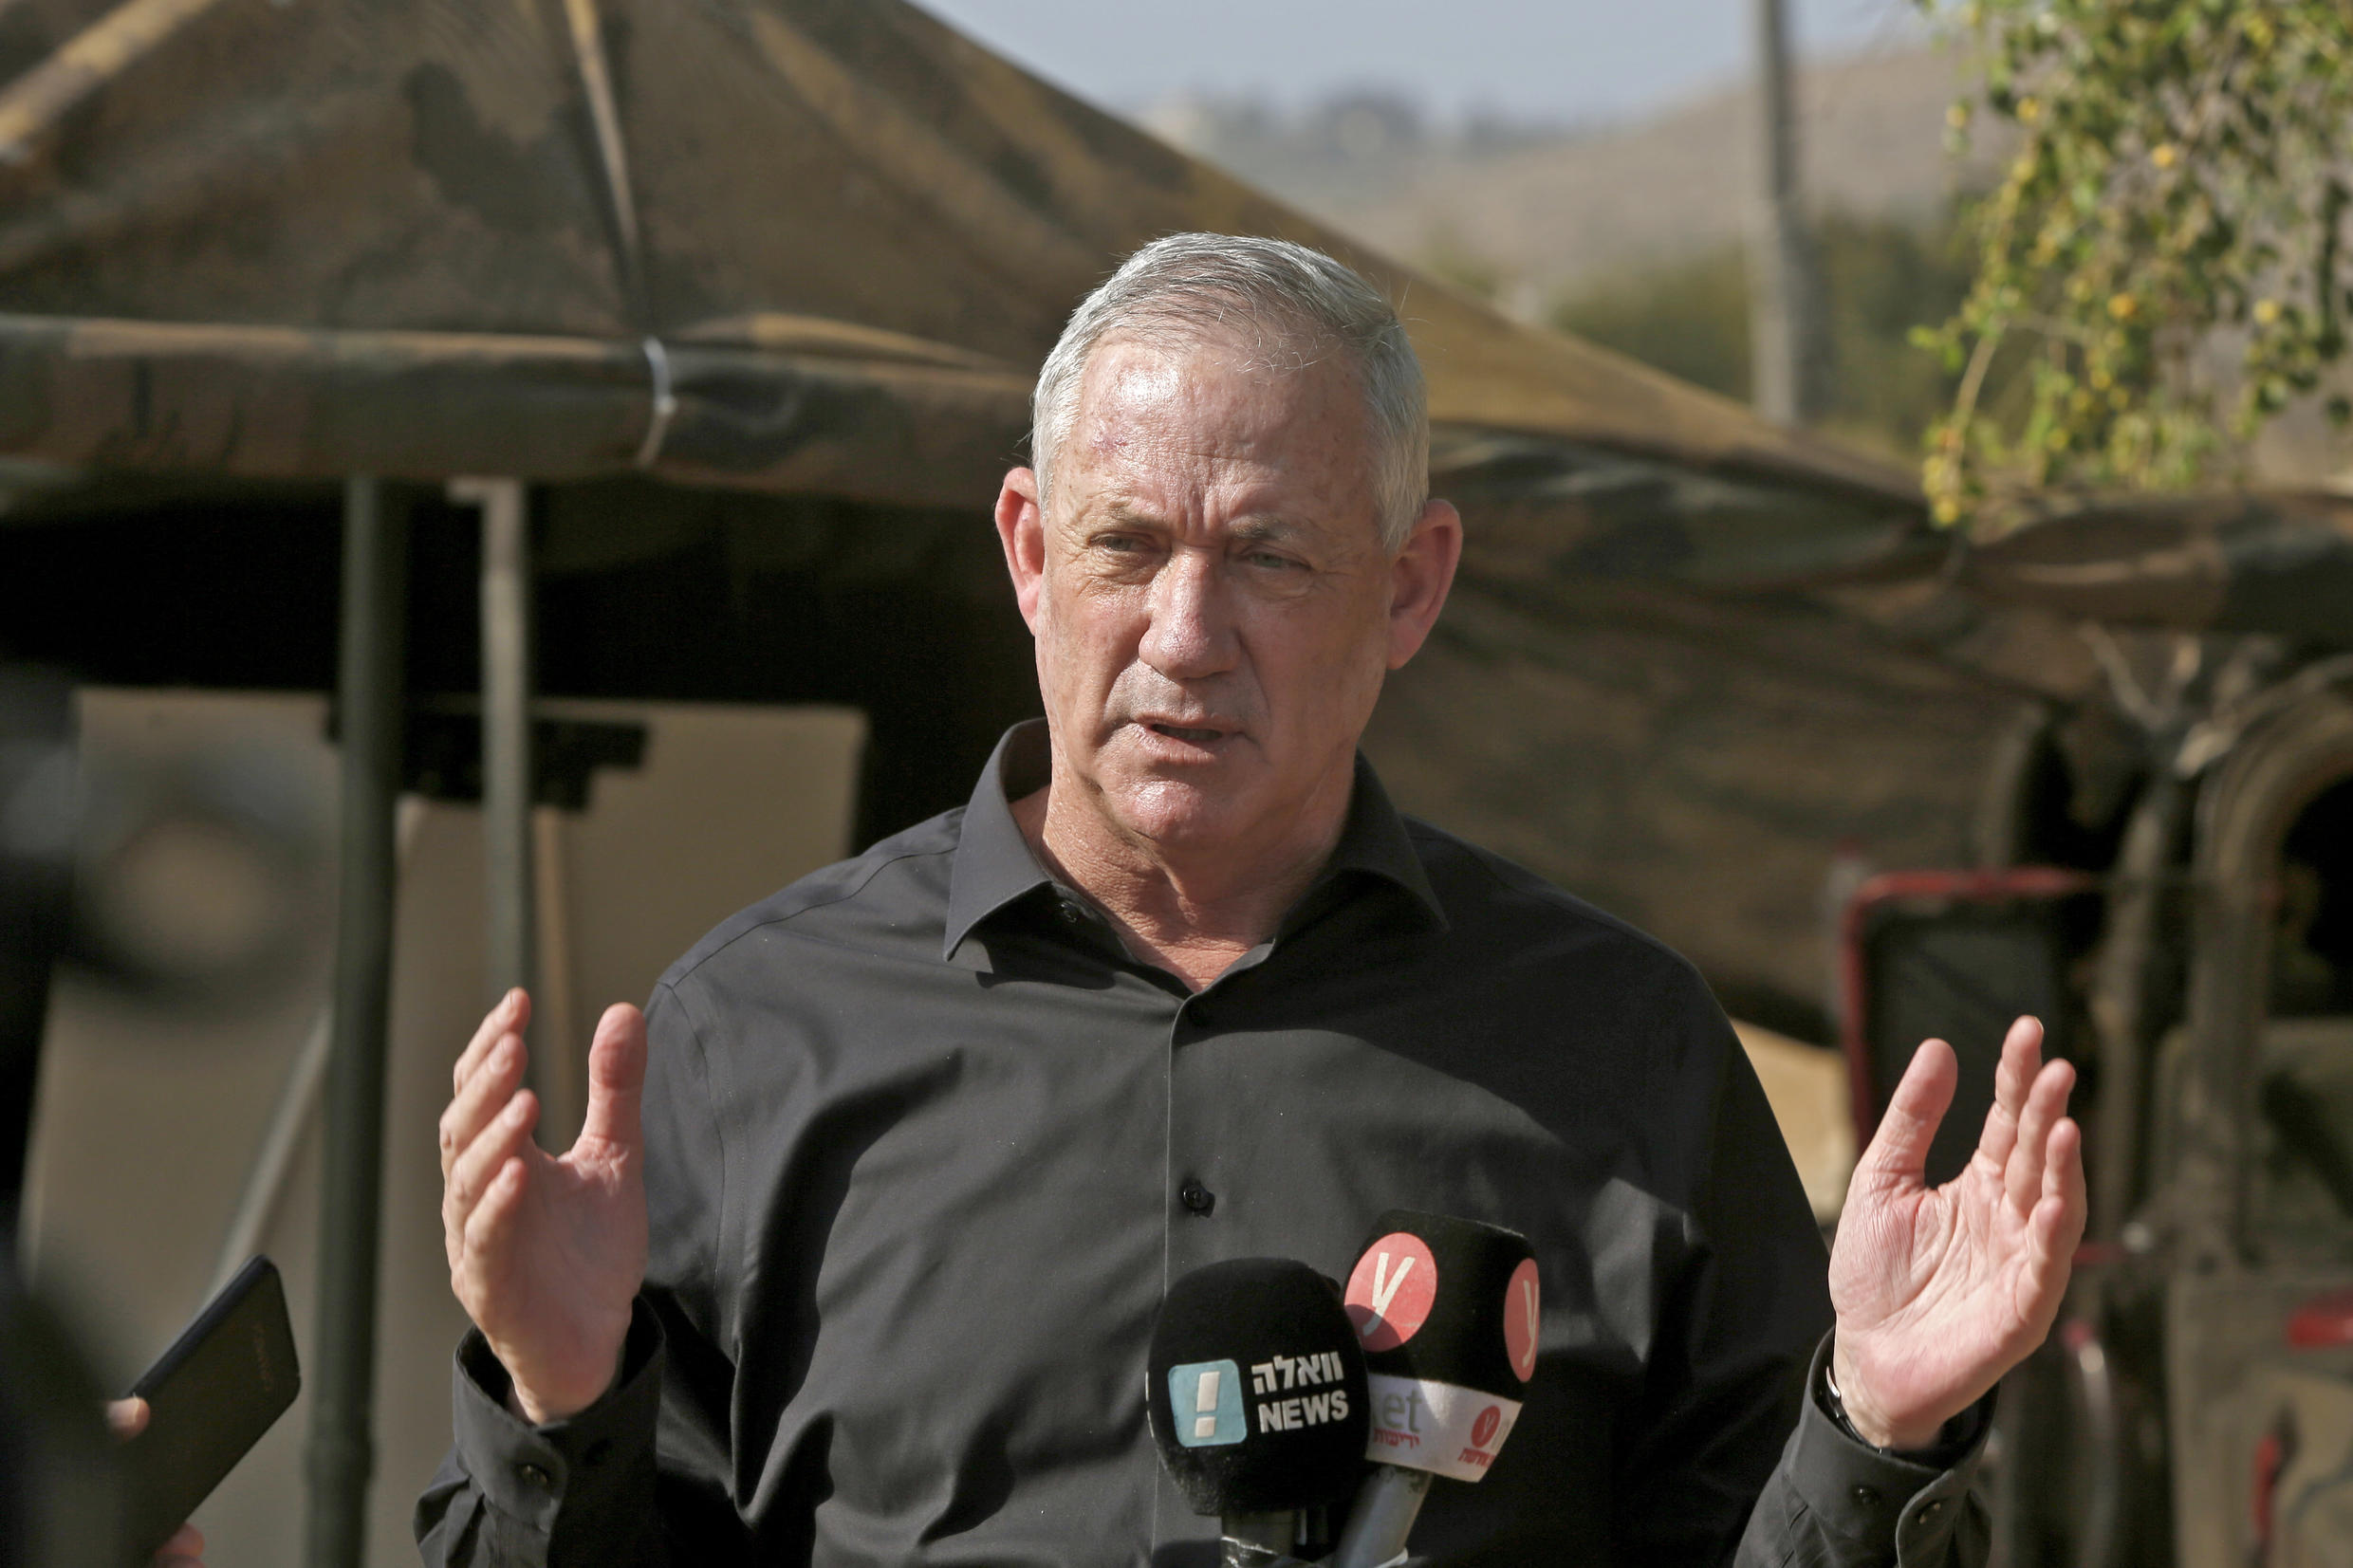 Benny Gantz, Israel's Alternate Prime Minister and Defence Minister, is a long-time rival of Netanyahu